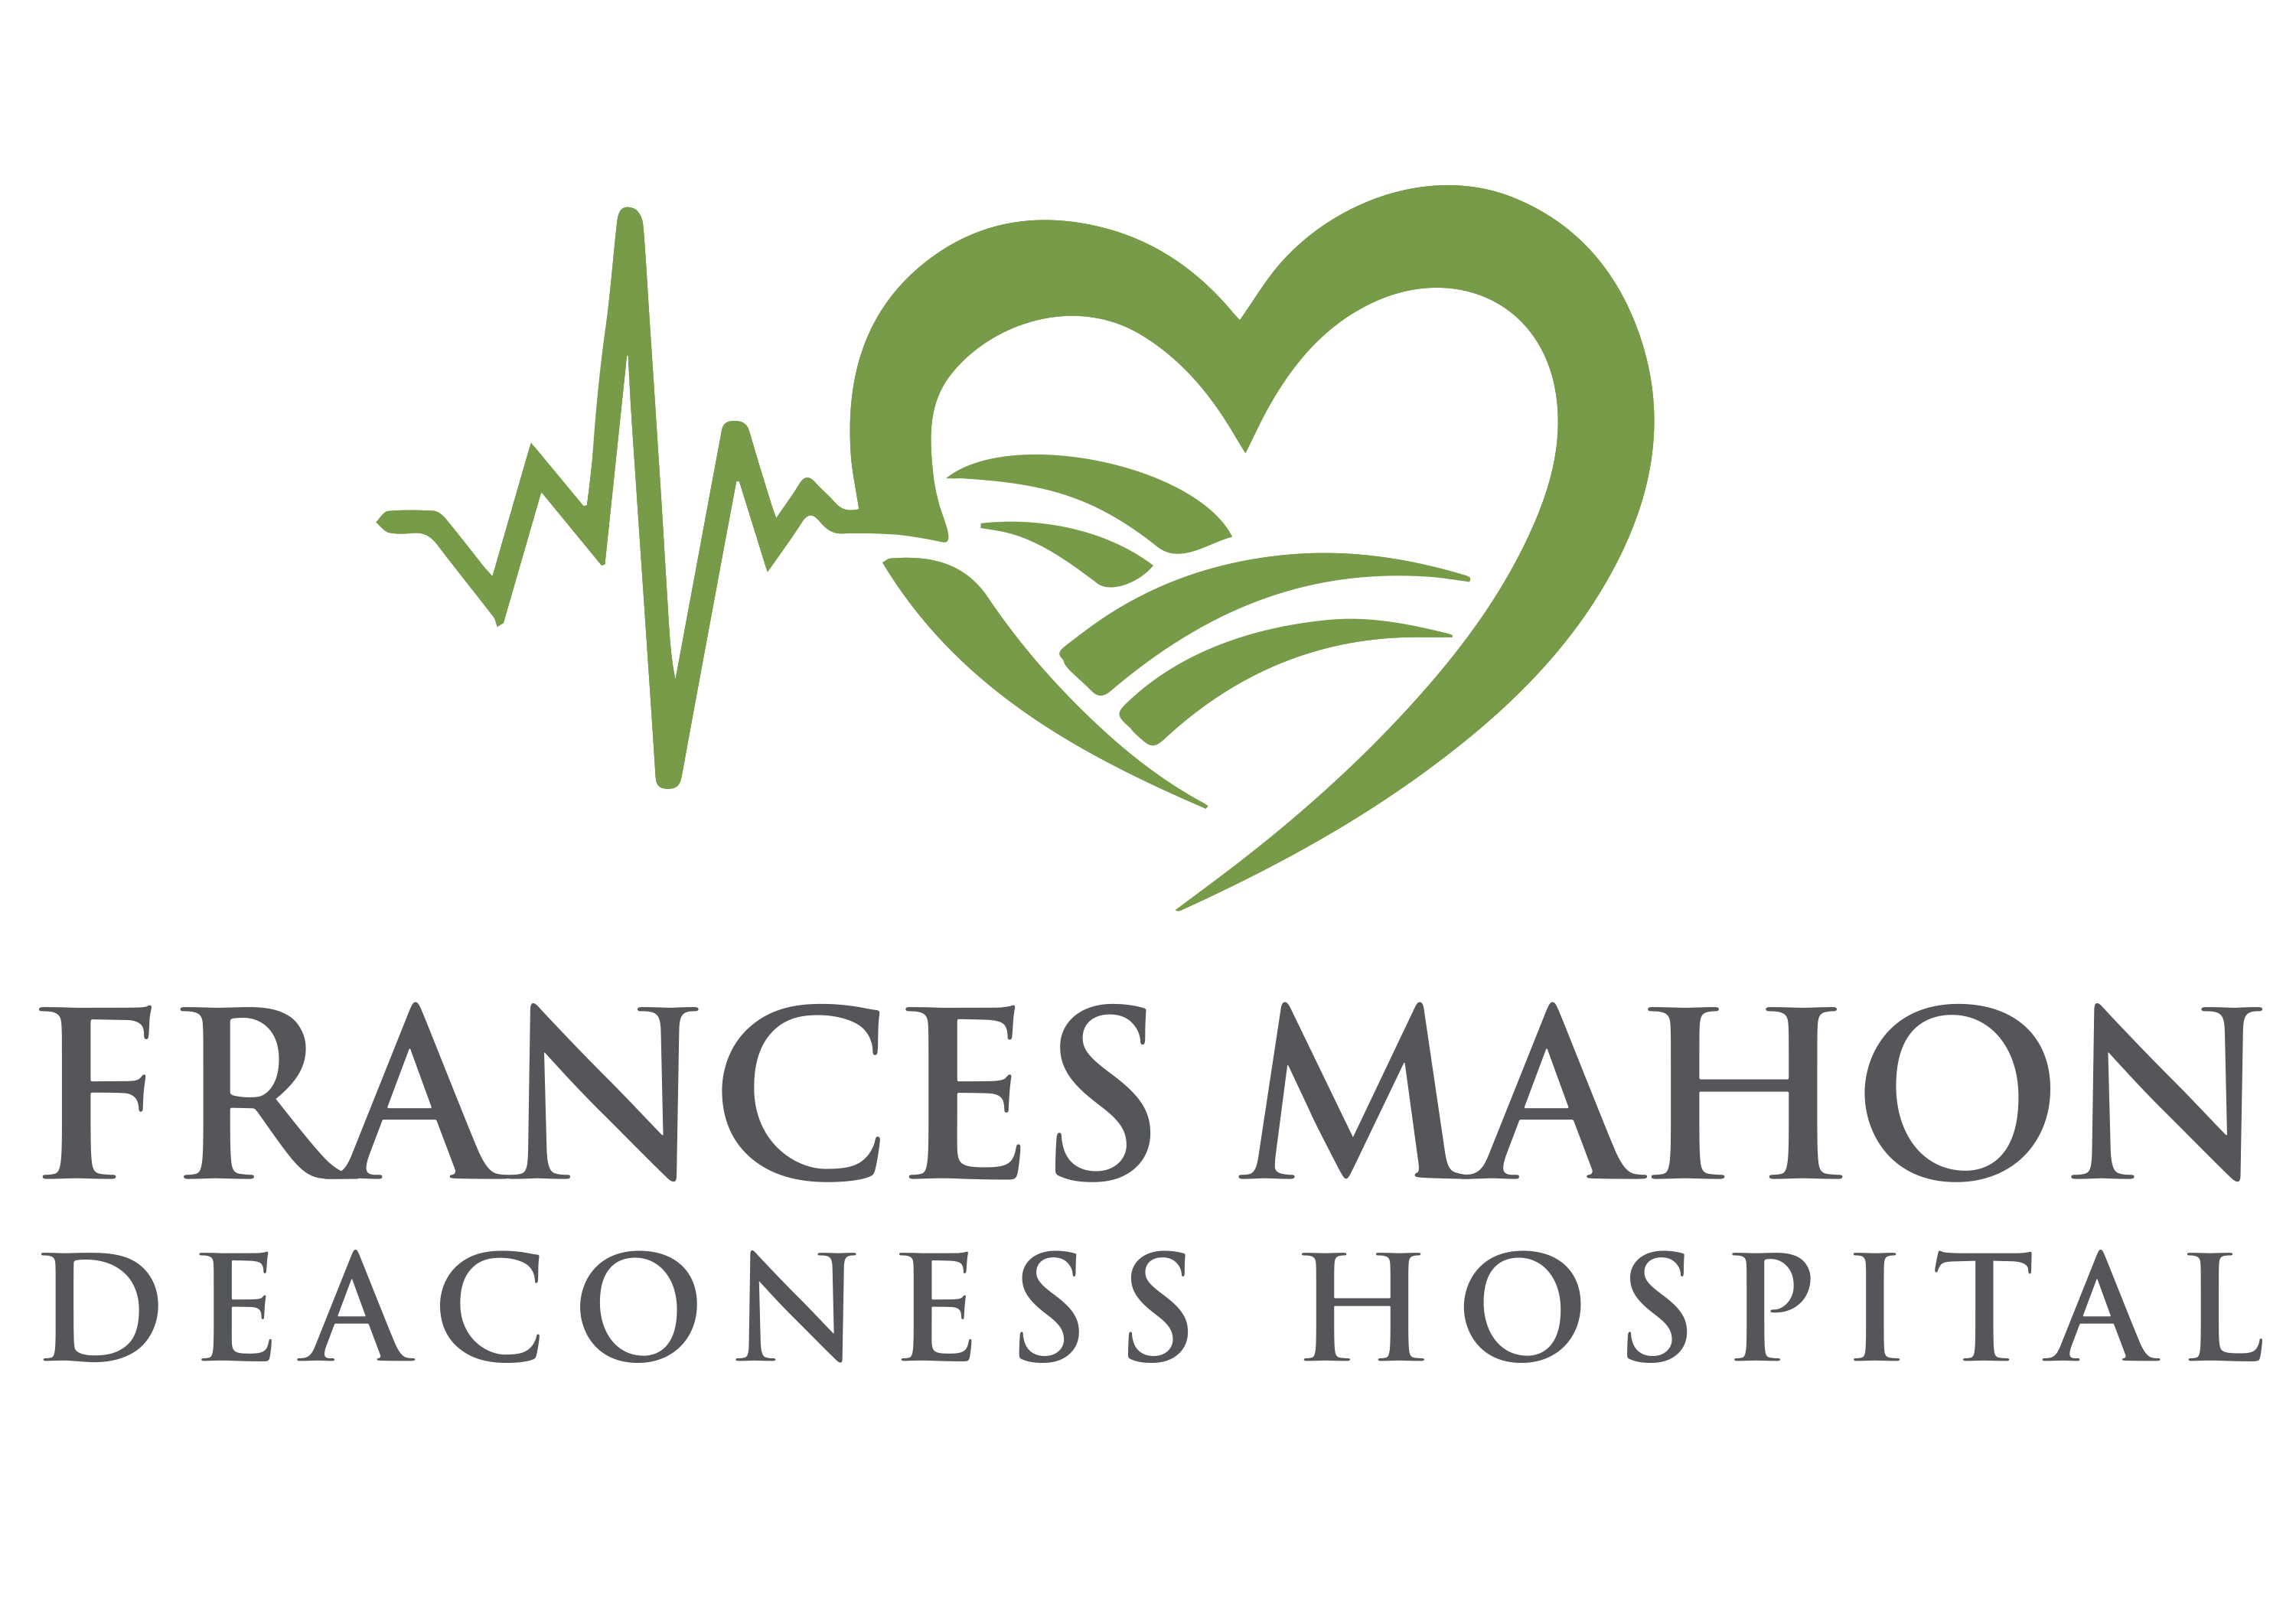 Orthopedic Surgeon Needed for a Two Physician Orthopedic Surgery Team - Frances Mahon Deaconess Hospital